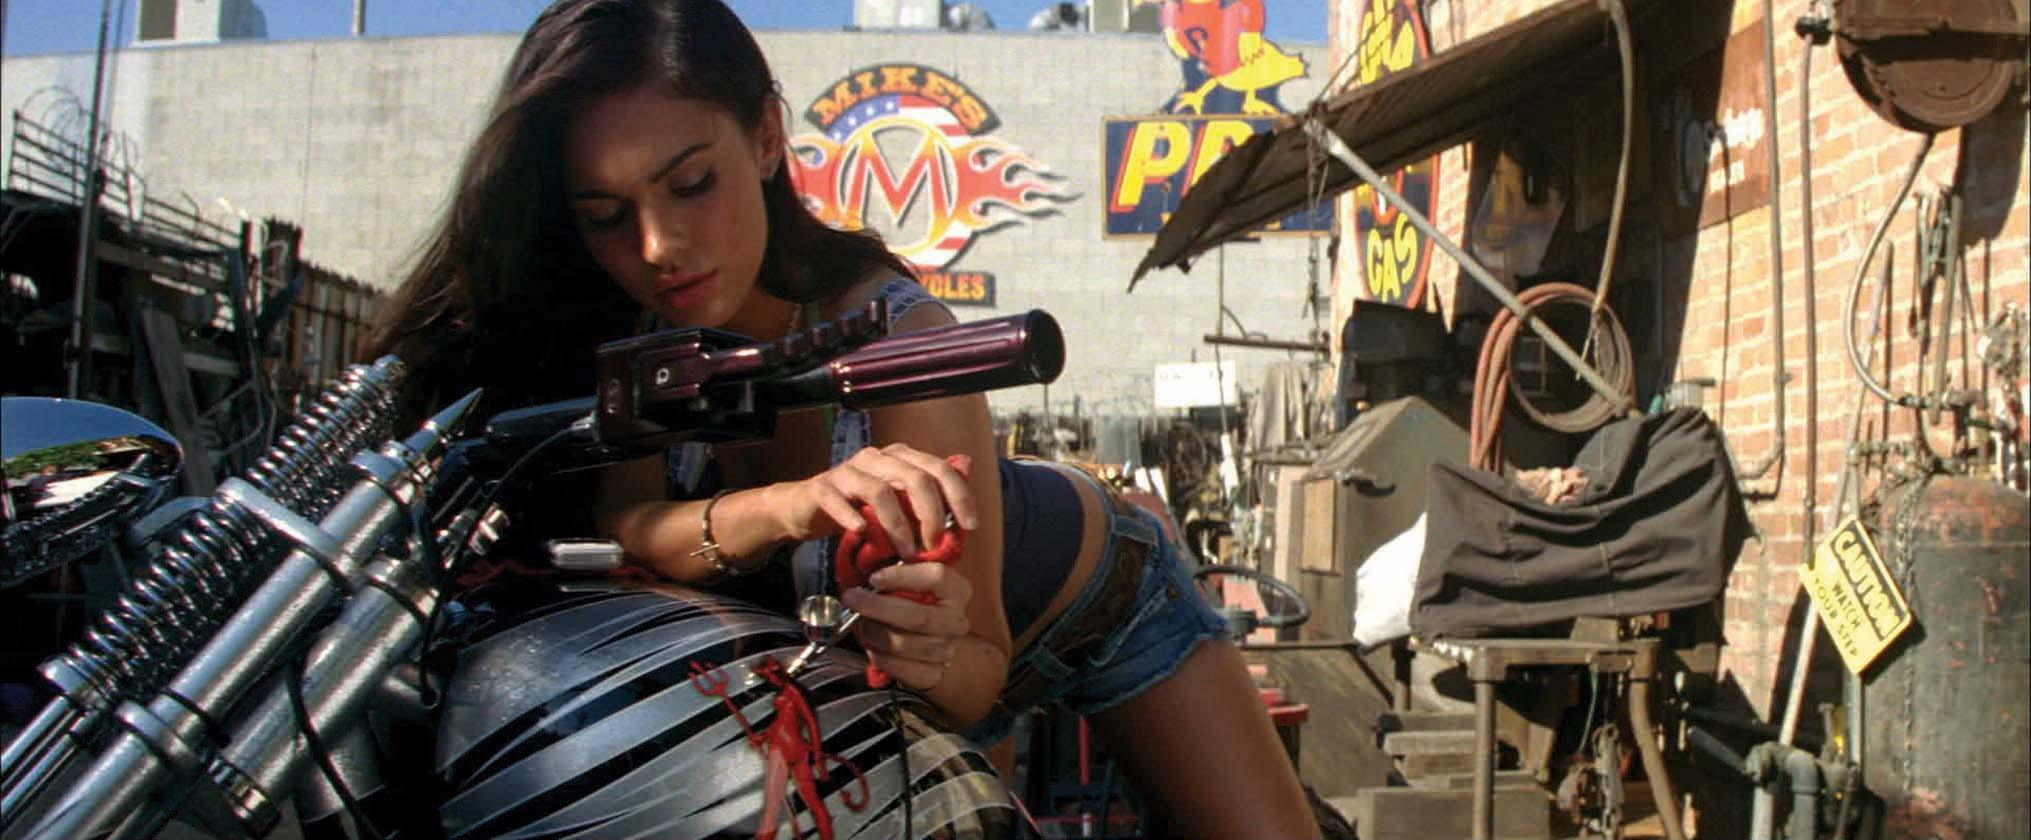 Image 3 Megan Fox Motorcycle Gas Tank From Transformers Revenge Of The Fallen